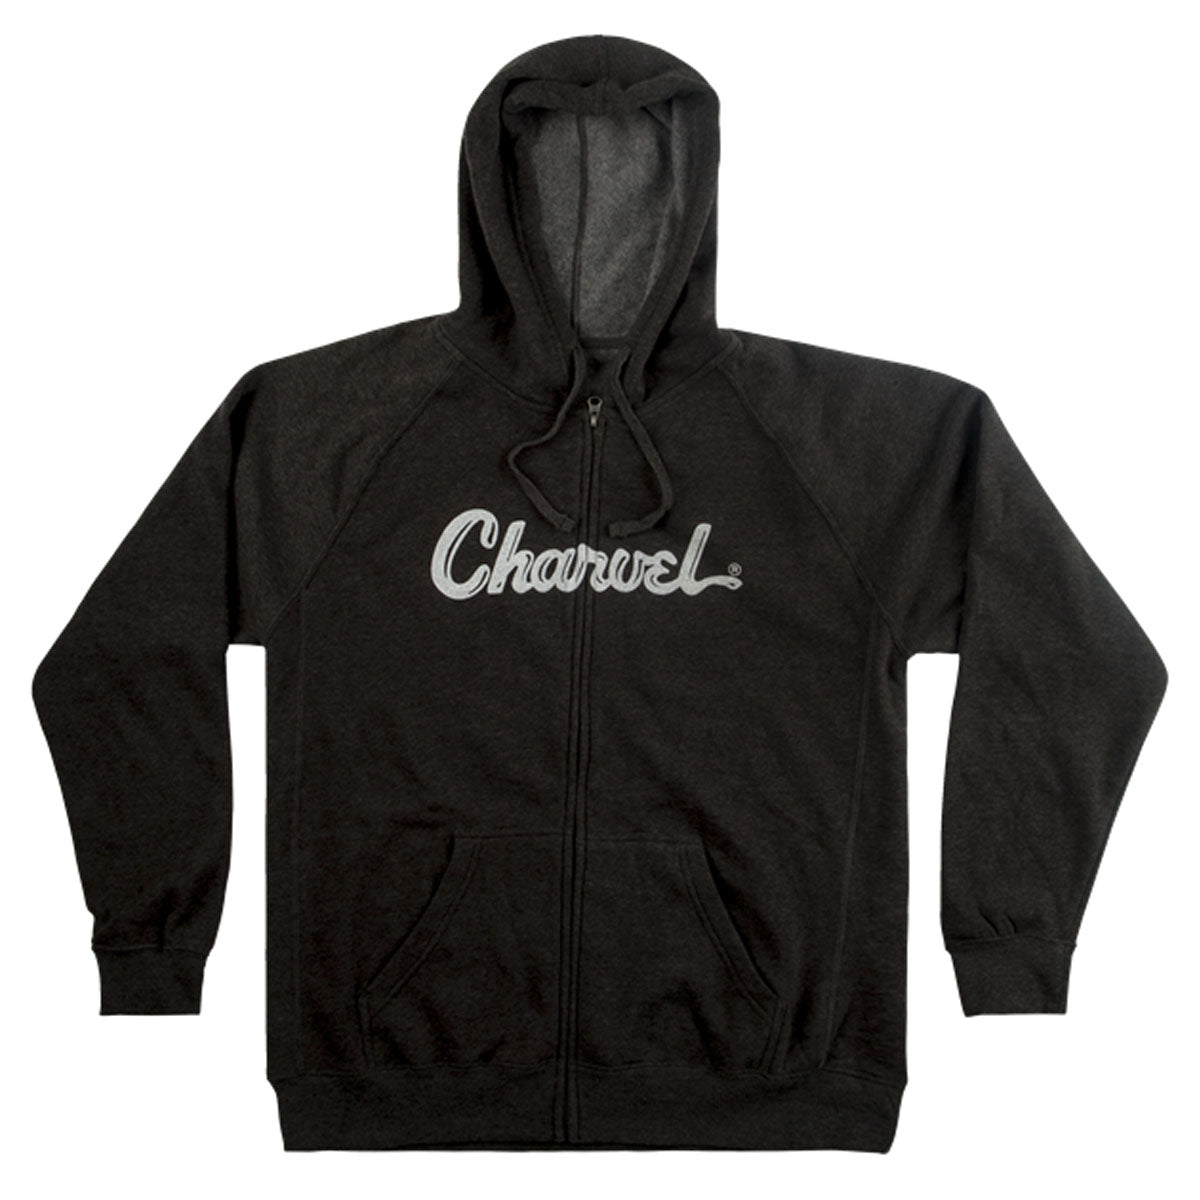 Charvel Logo Hoodie, Charcoal, XL Extra Large - 0992463706